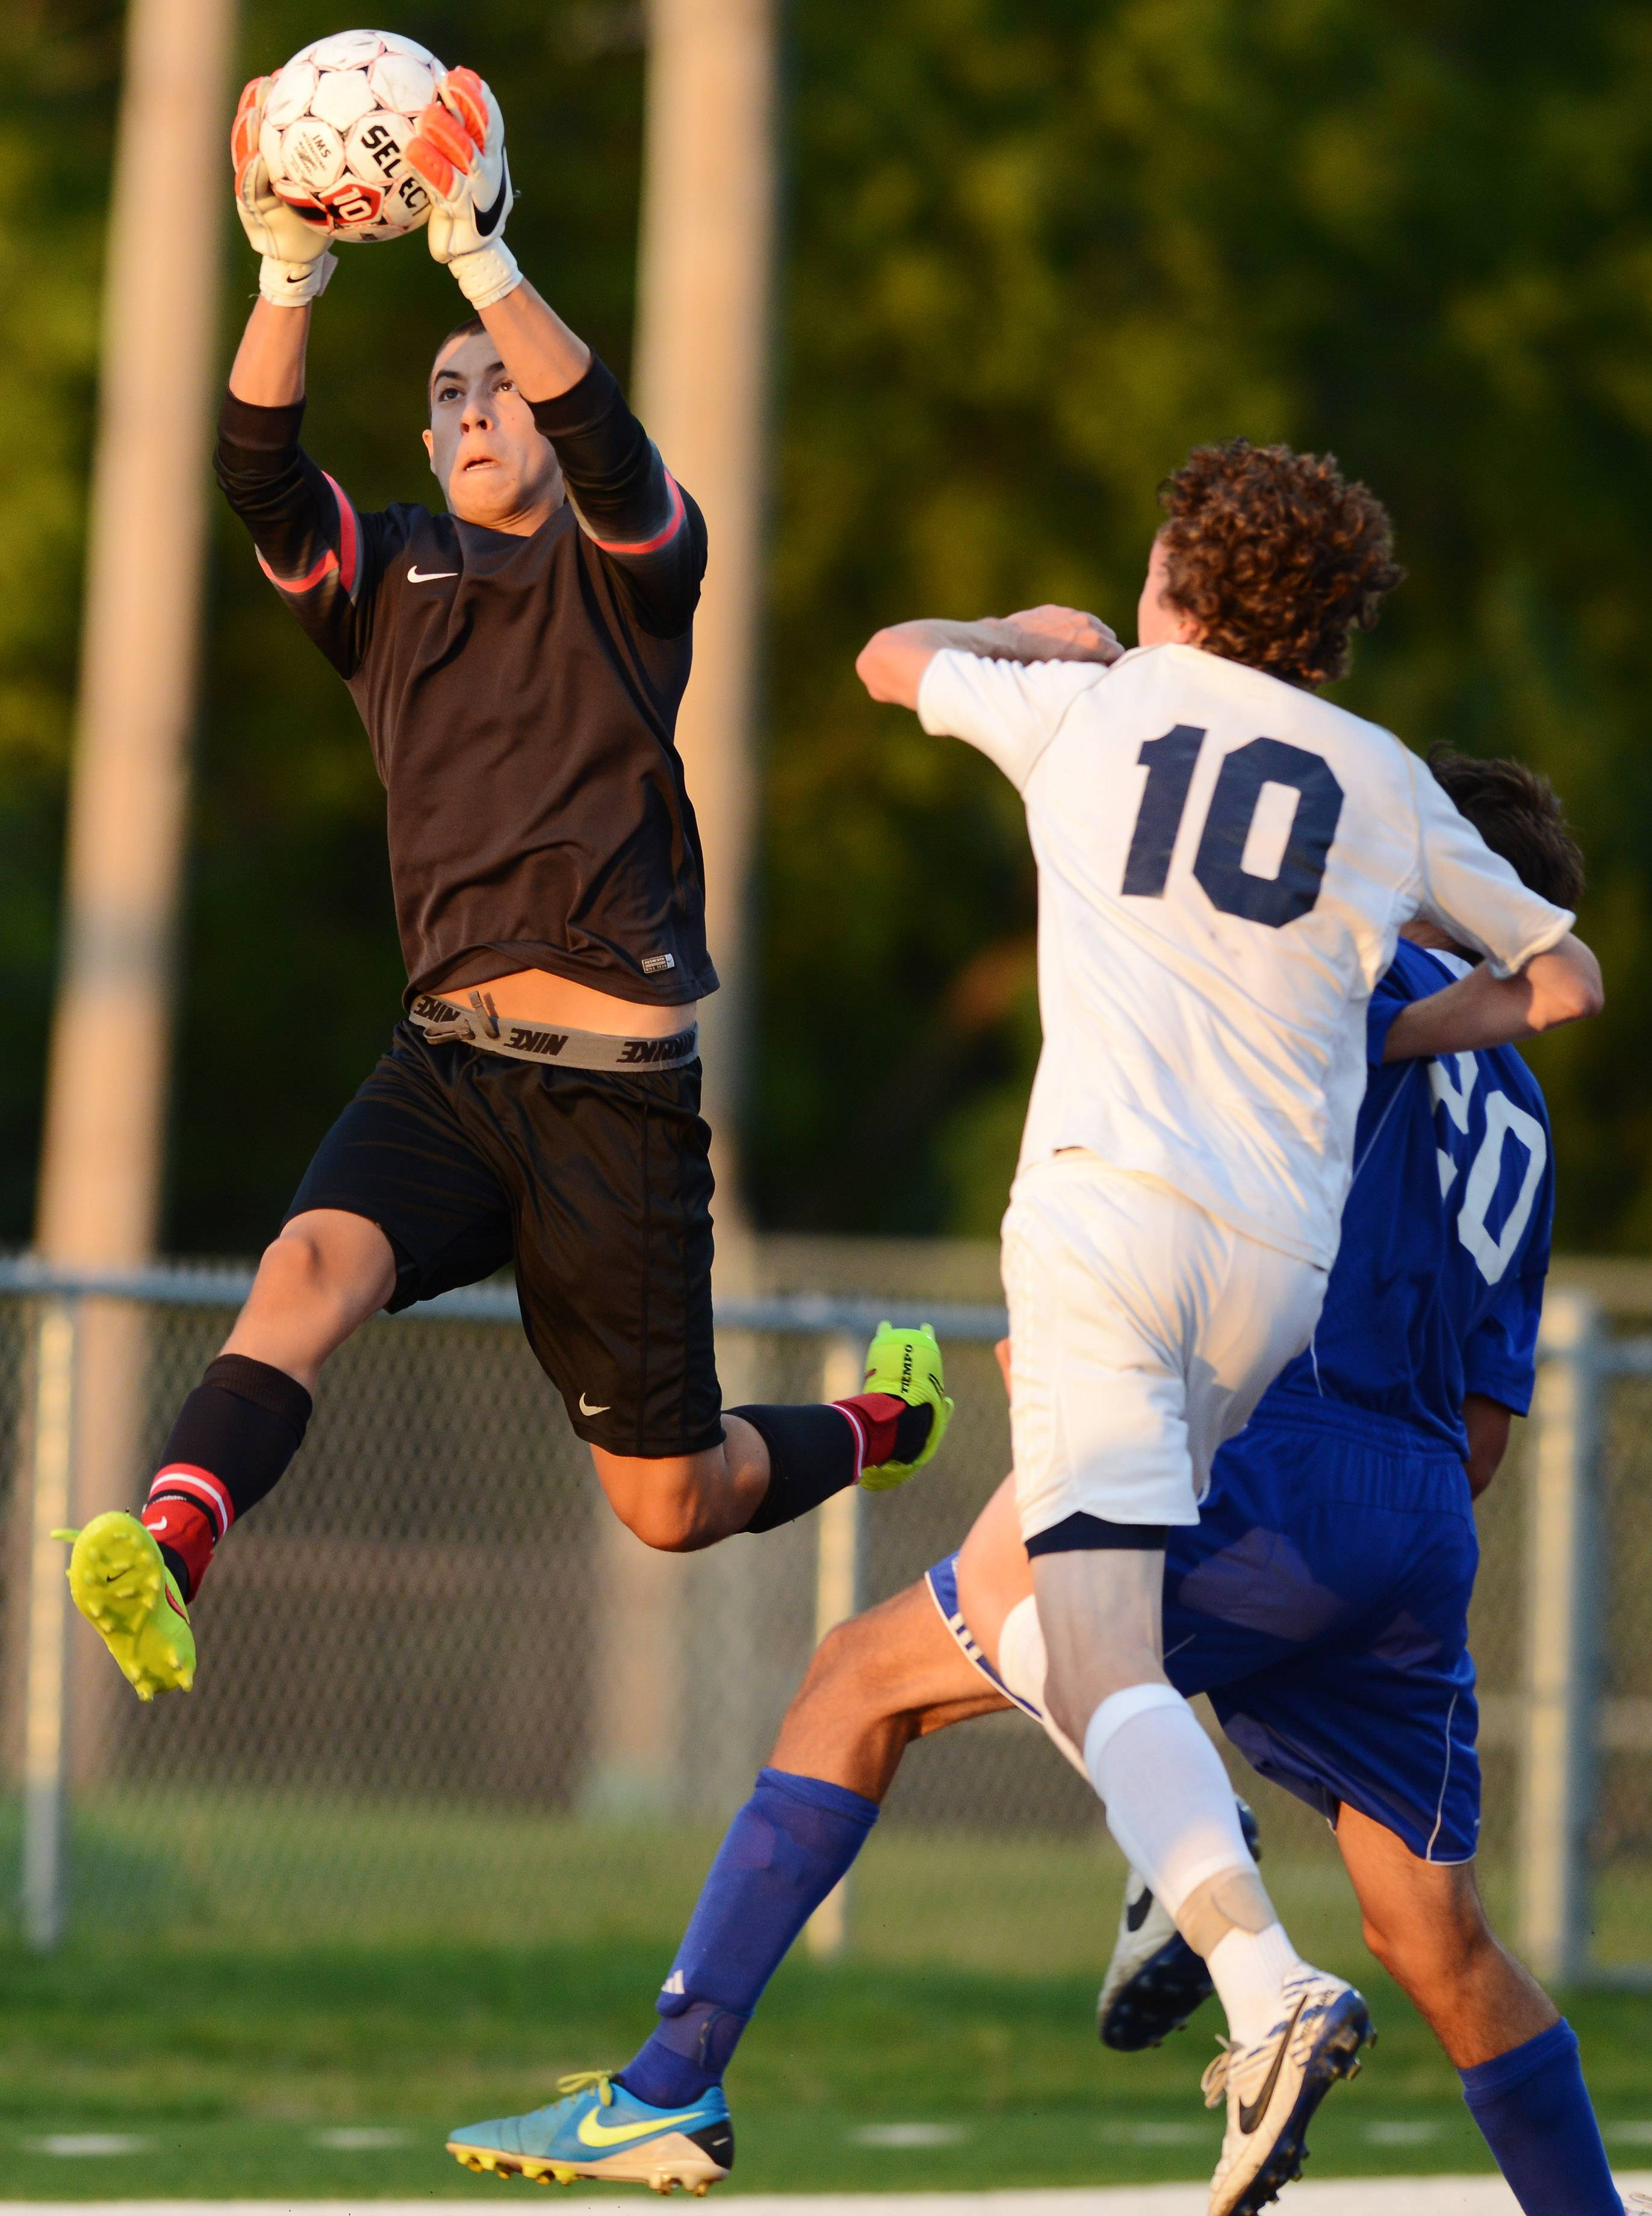 Lake Zurich goalkeeper George Maroudas leaps to take control of the ball in front of St. Viator's Aiden Williams following a Lions corner kick during Wednesday's game.